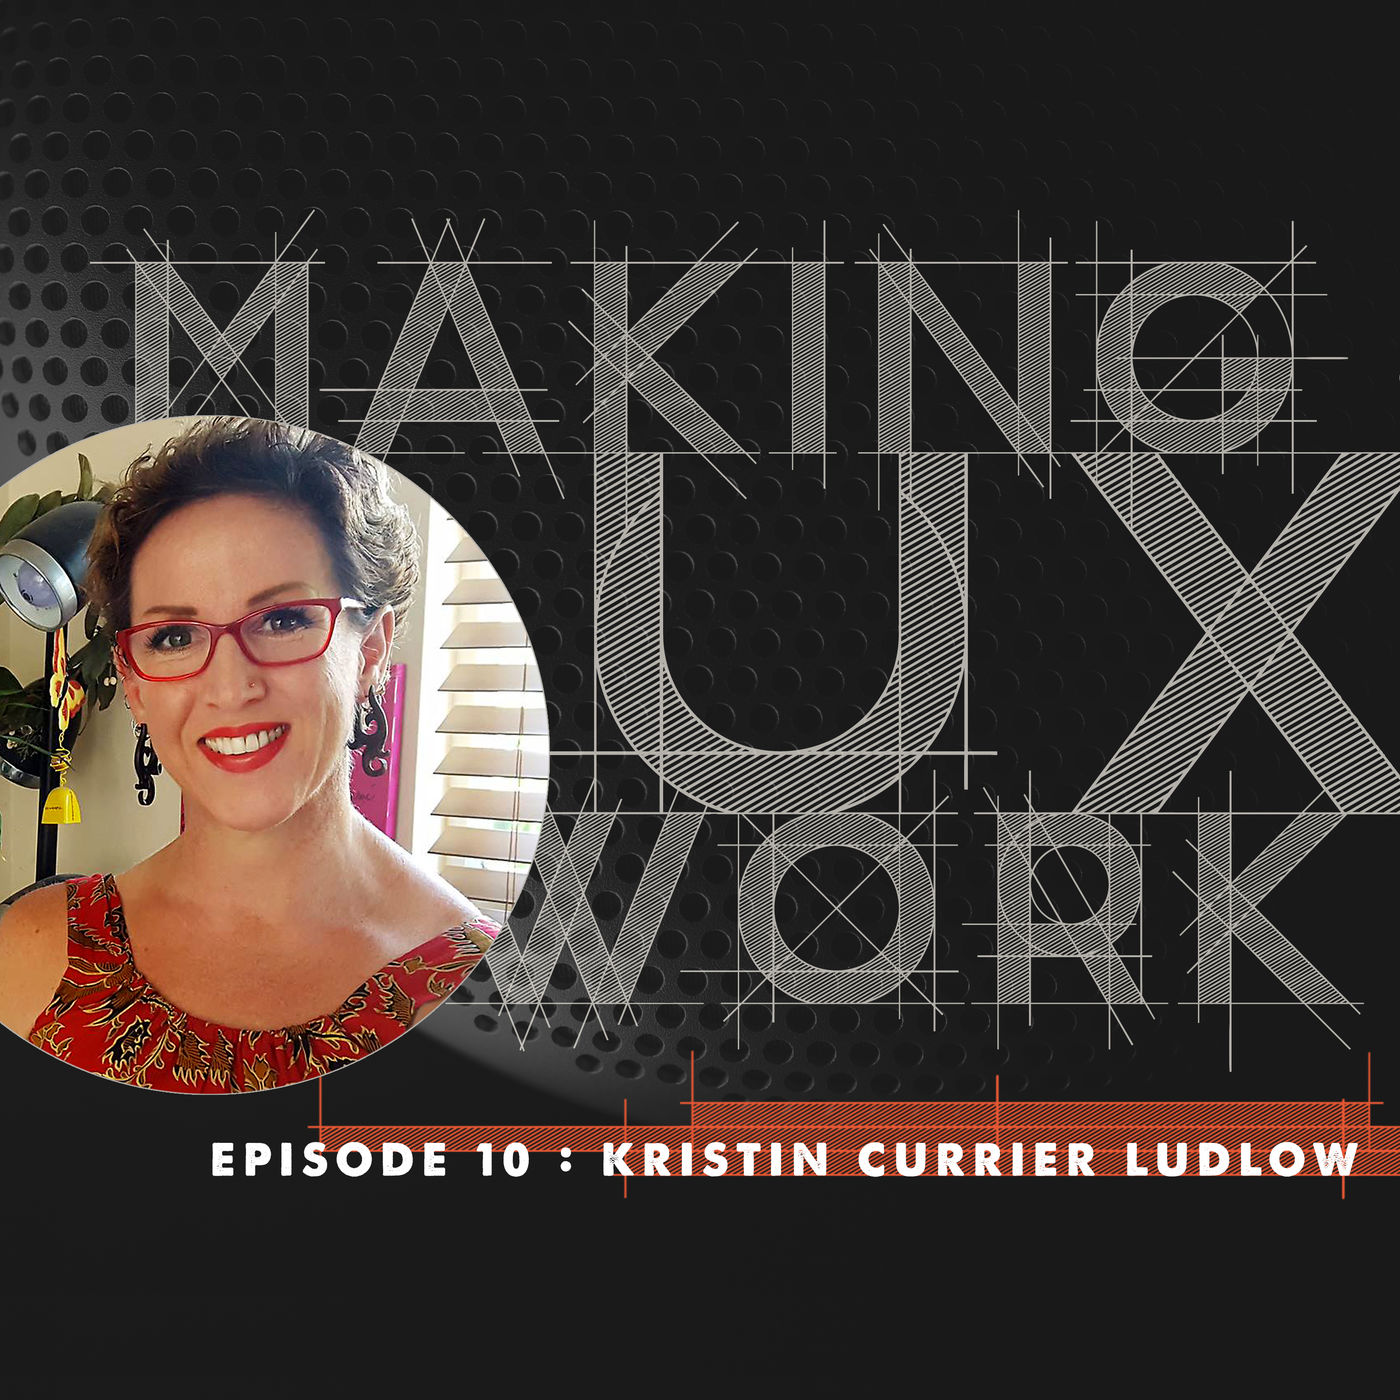 Episode 10, Kristin Currier Ludlow: YES WE CAN!